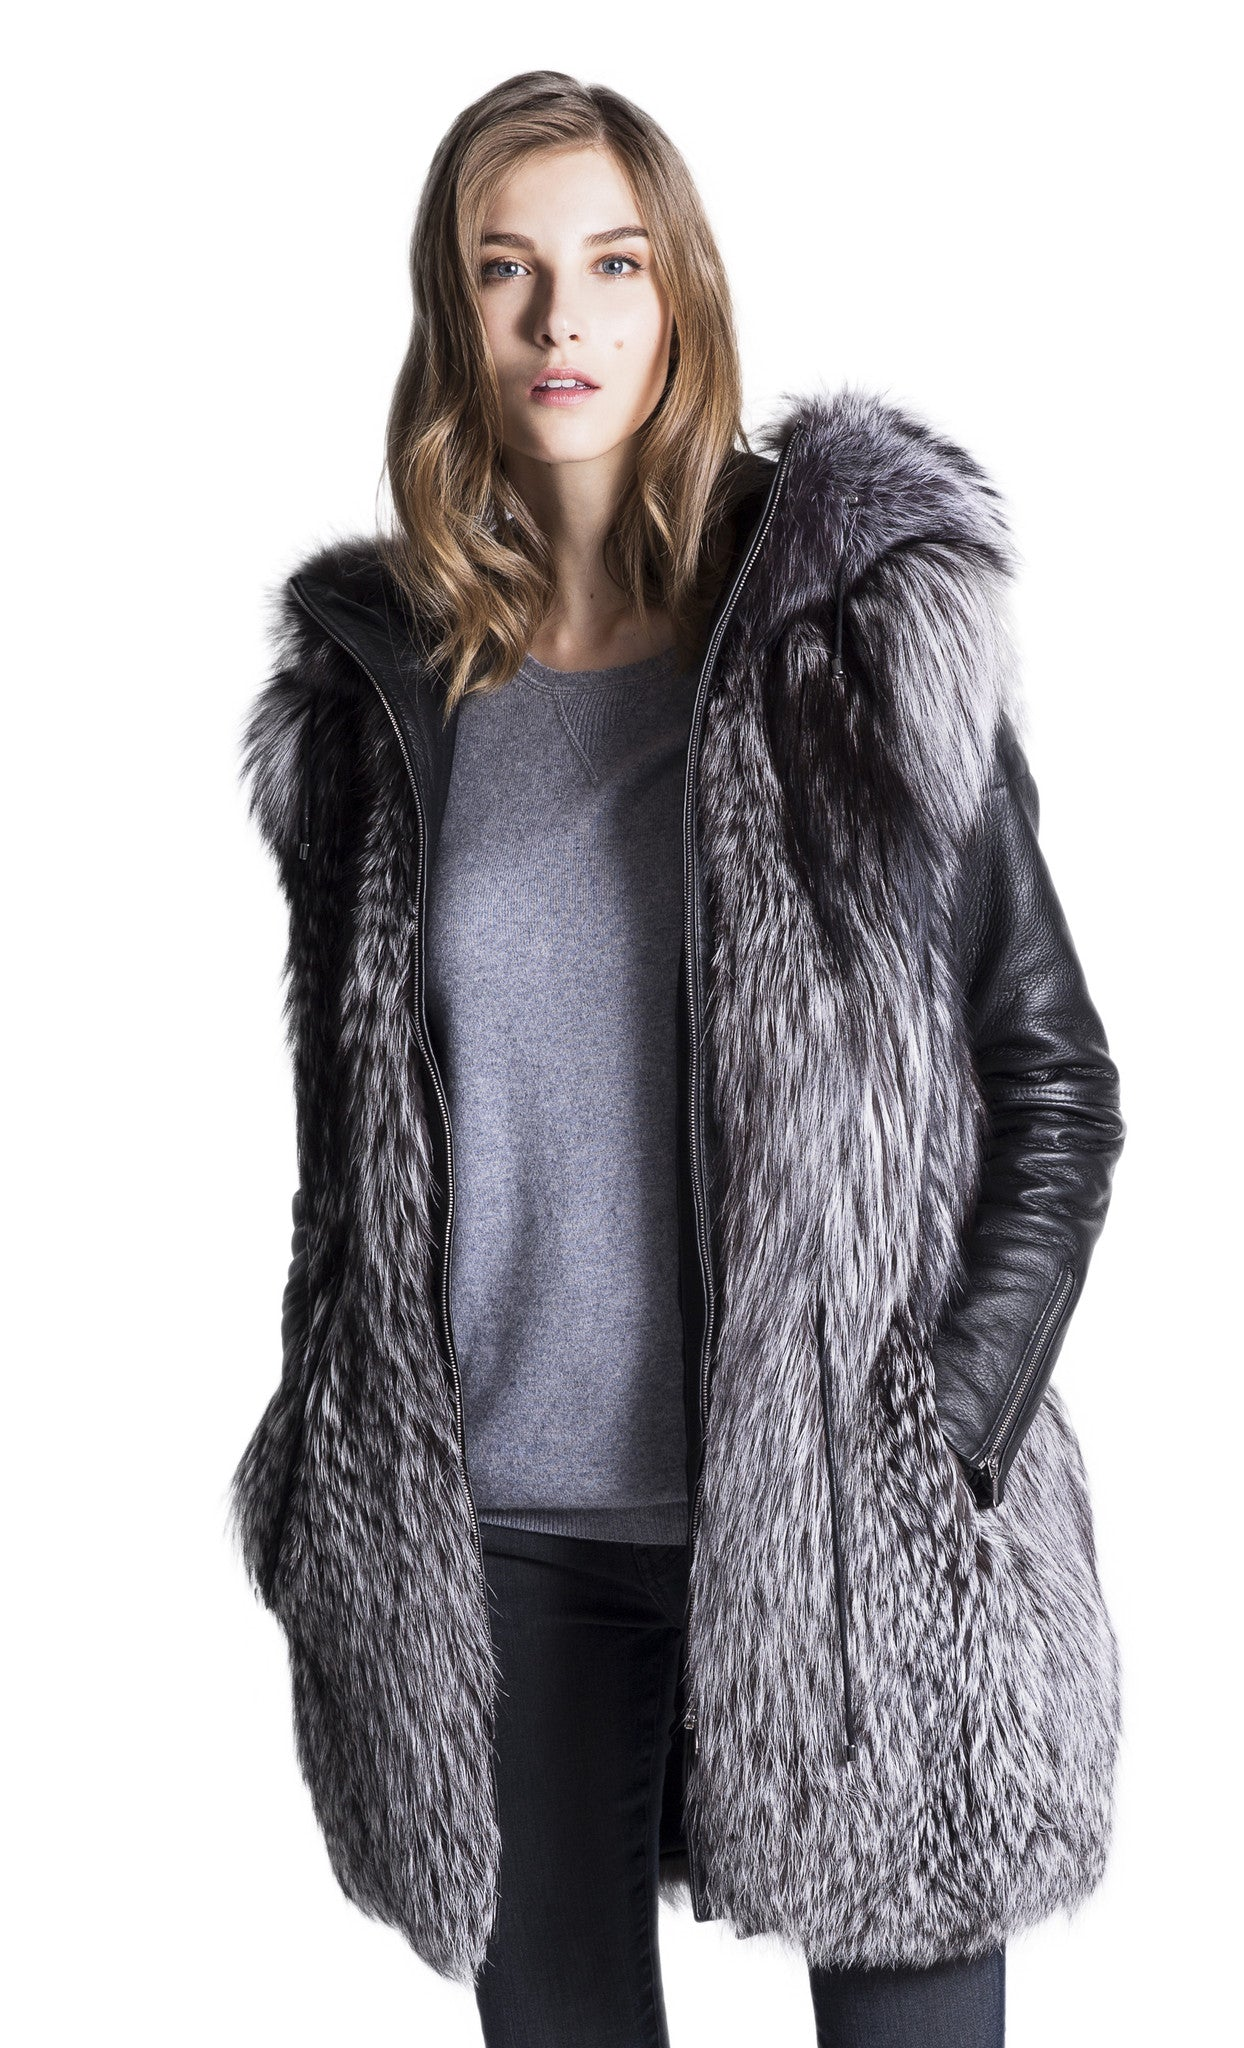 670ae1f6f WOMEN's Silver Fox Fur Coat – KUMETH